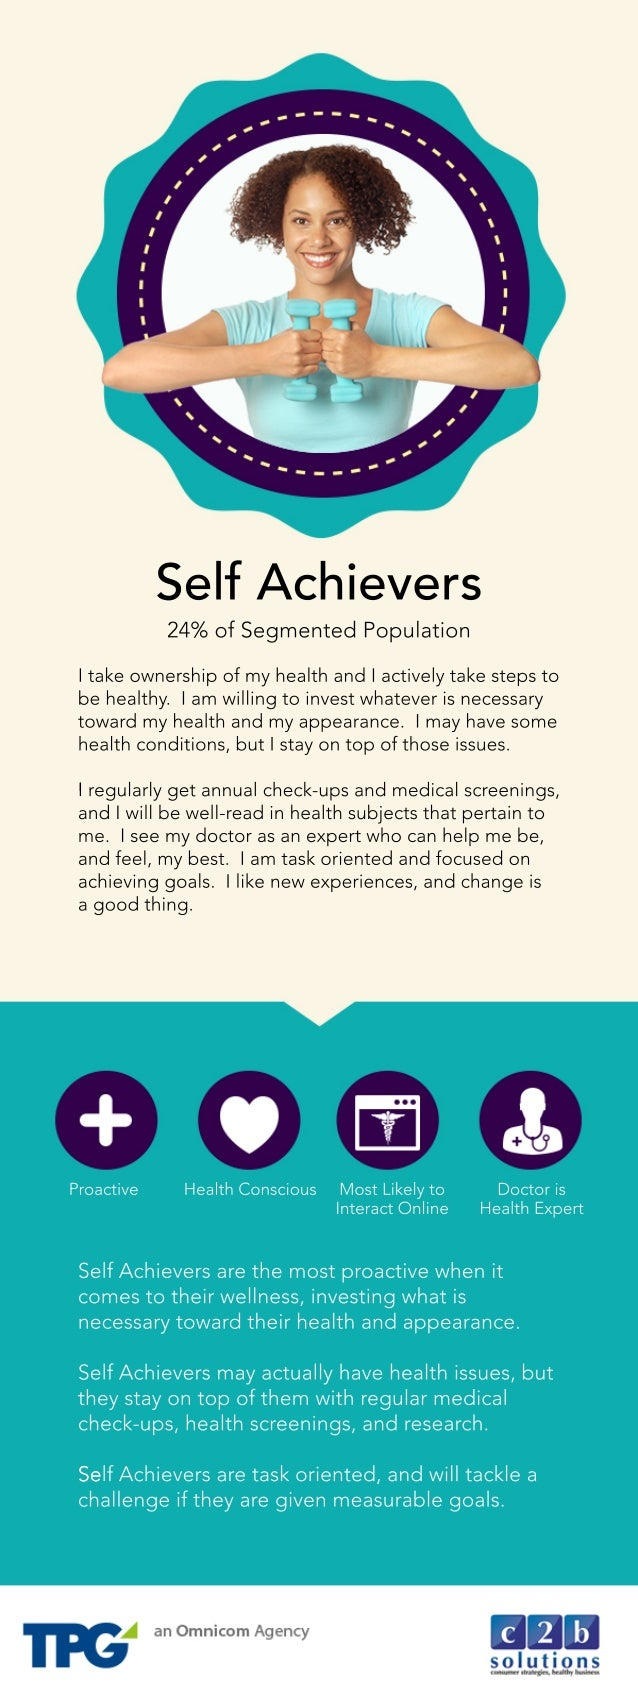 Self Achievers Profile: Psychographic Segmentation and the Health Care Consumer